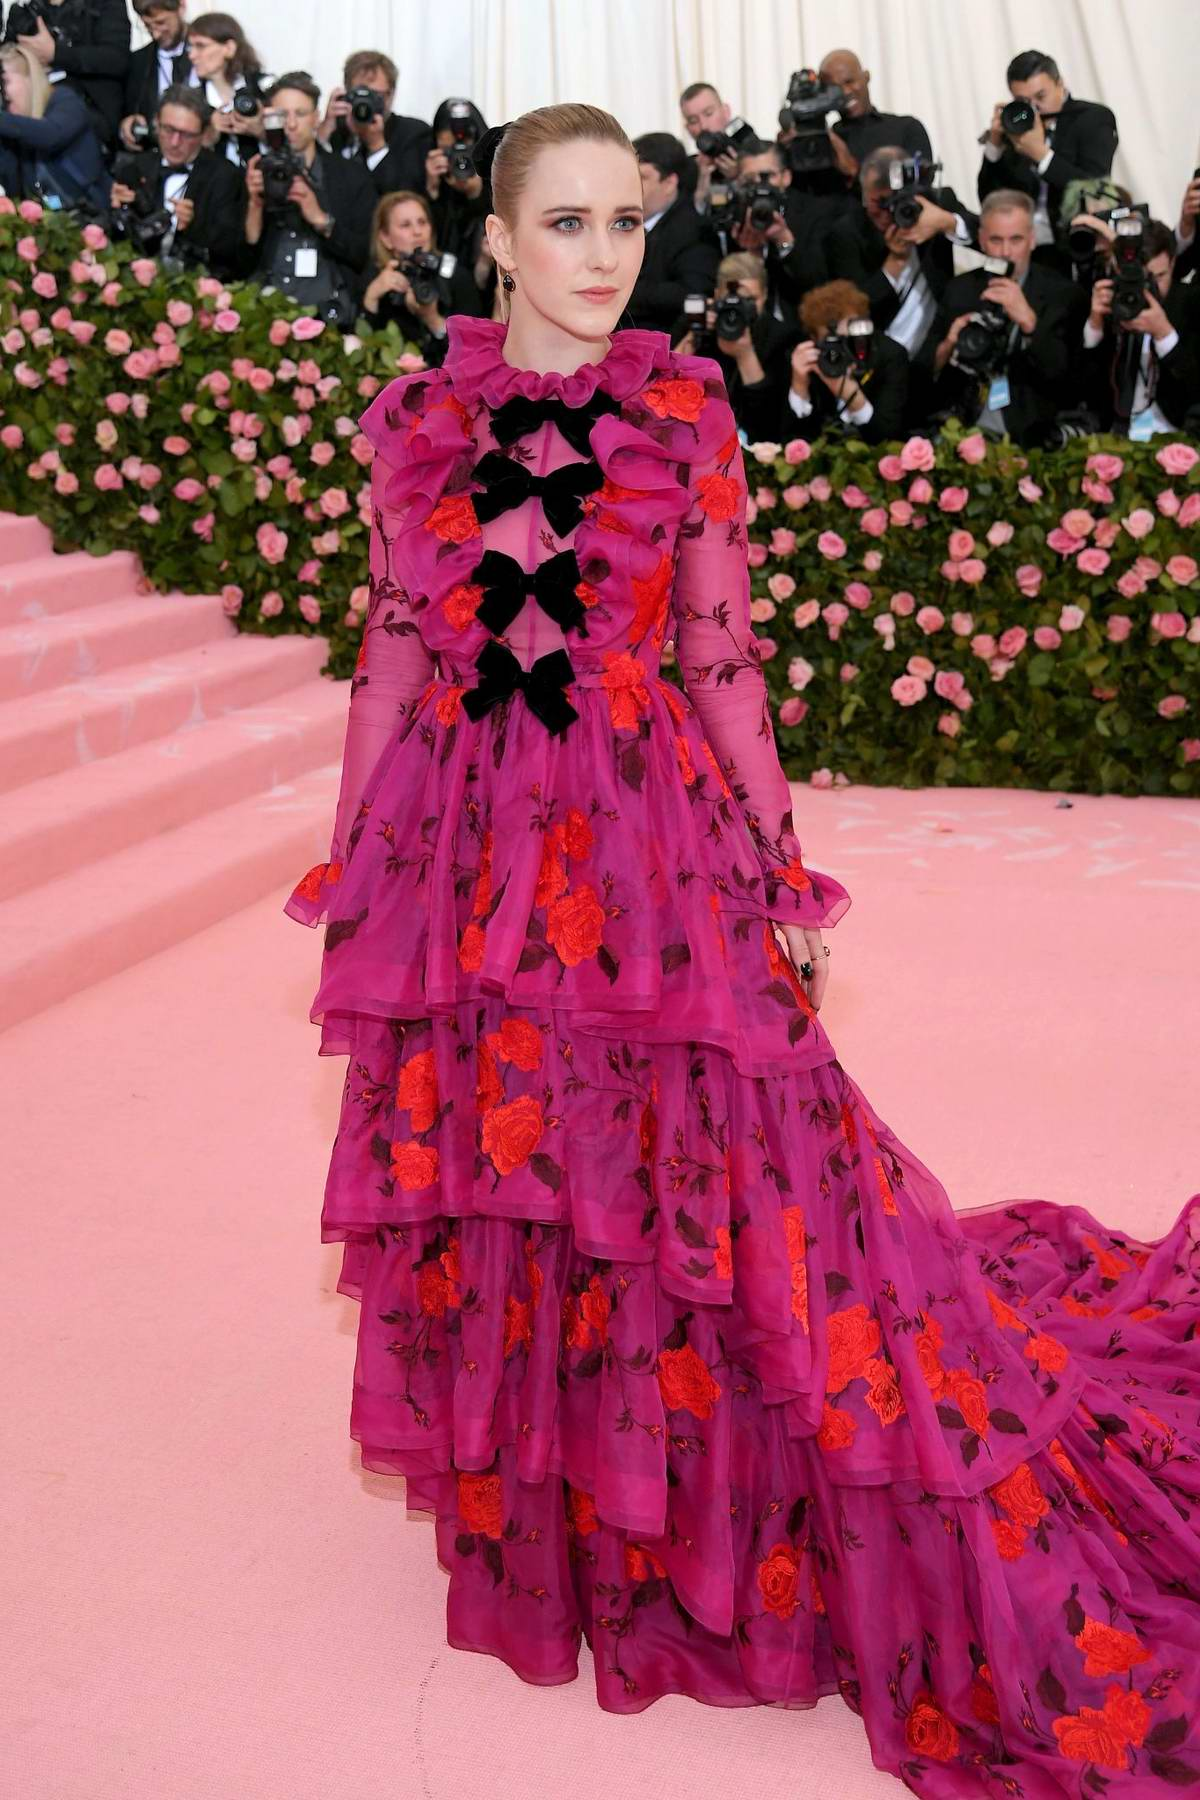 Rachel Brosnahan attends The 2019 Met Gala Celebrating Camp: Notes on Fashion in New York City